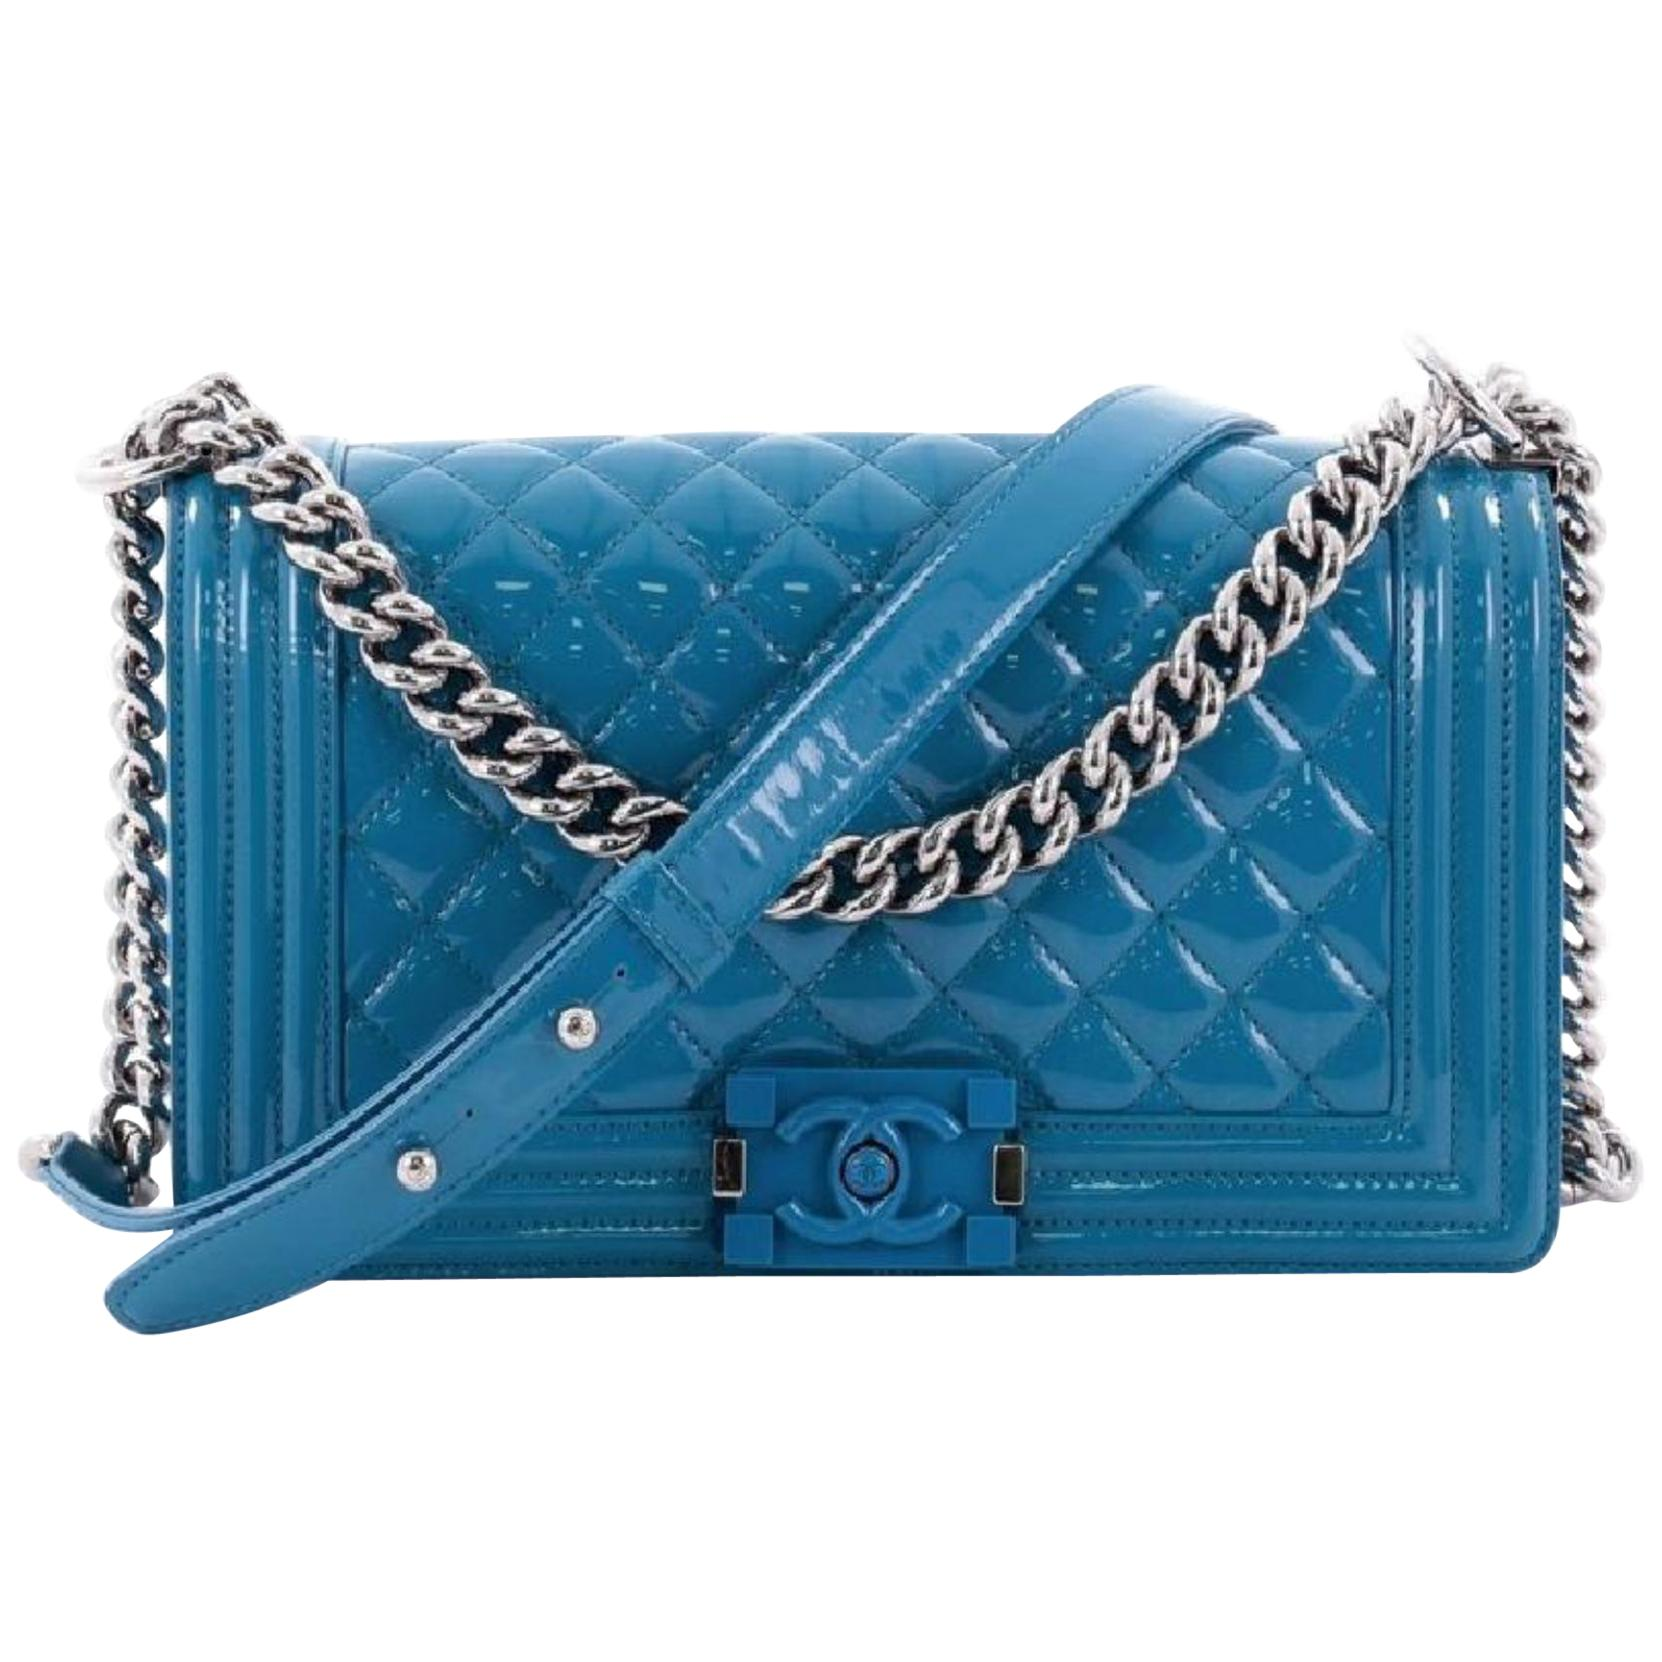 9a7713fd58ca Chanel 14P Runway Turquoise Patent Crossbody Phone Case / Bag at 1stdibs